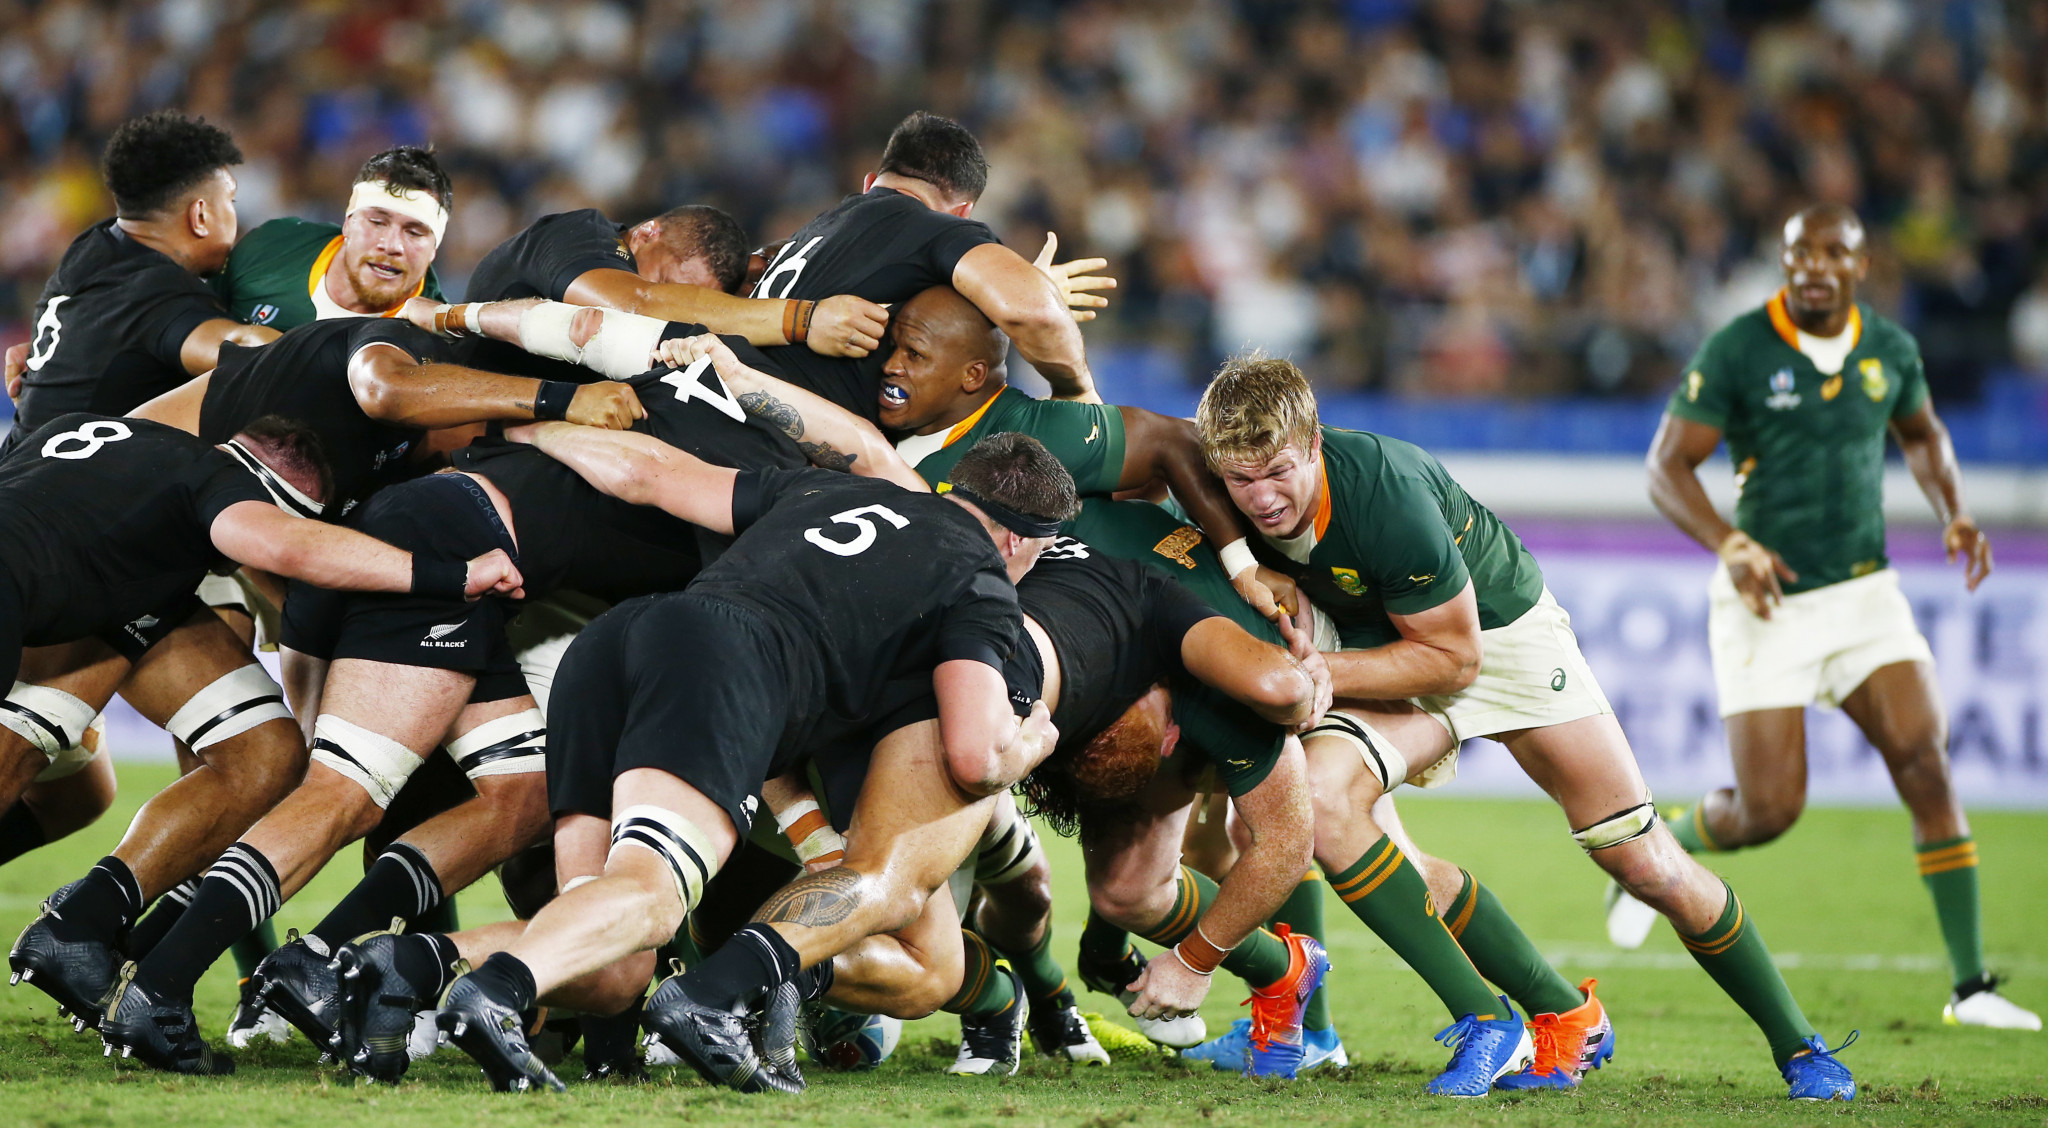 South Africa were hugely competitive, but the All Blacks proved too strong ©Getty Images